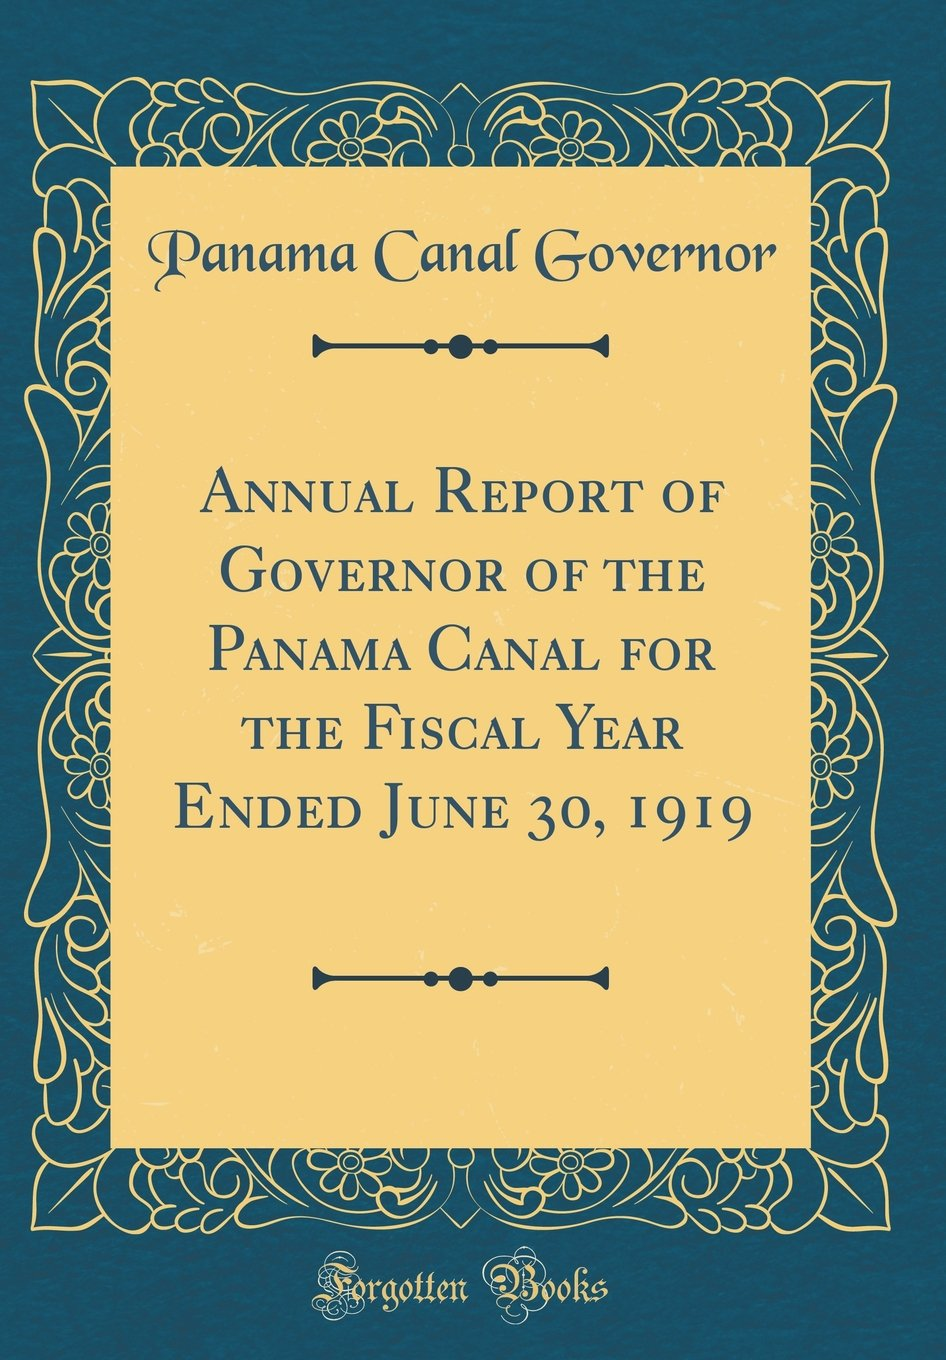 Download Annual Report of Governor of the Panama Canal for the Fiscal Year Ended June 30, 1919 (Classic Reprint) pdf